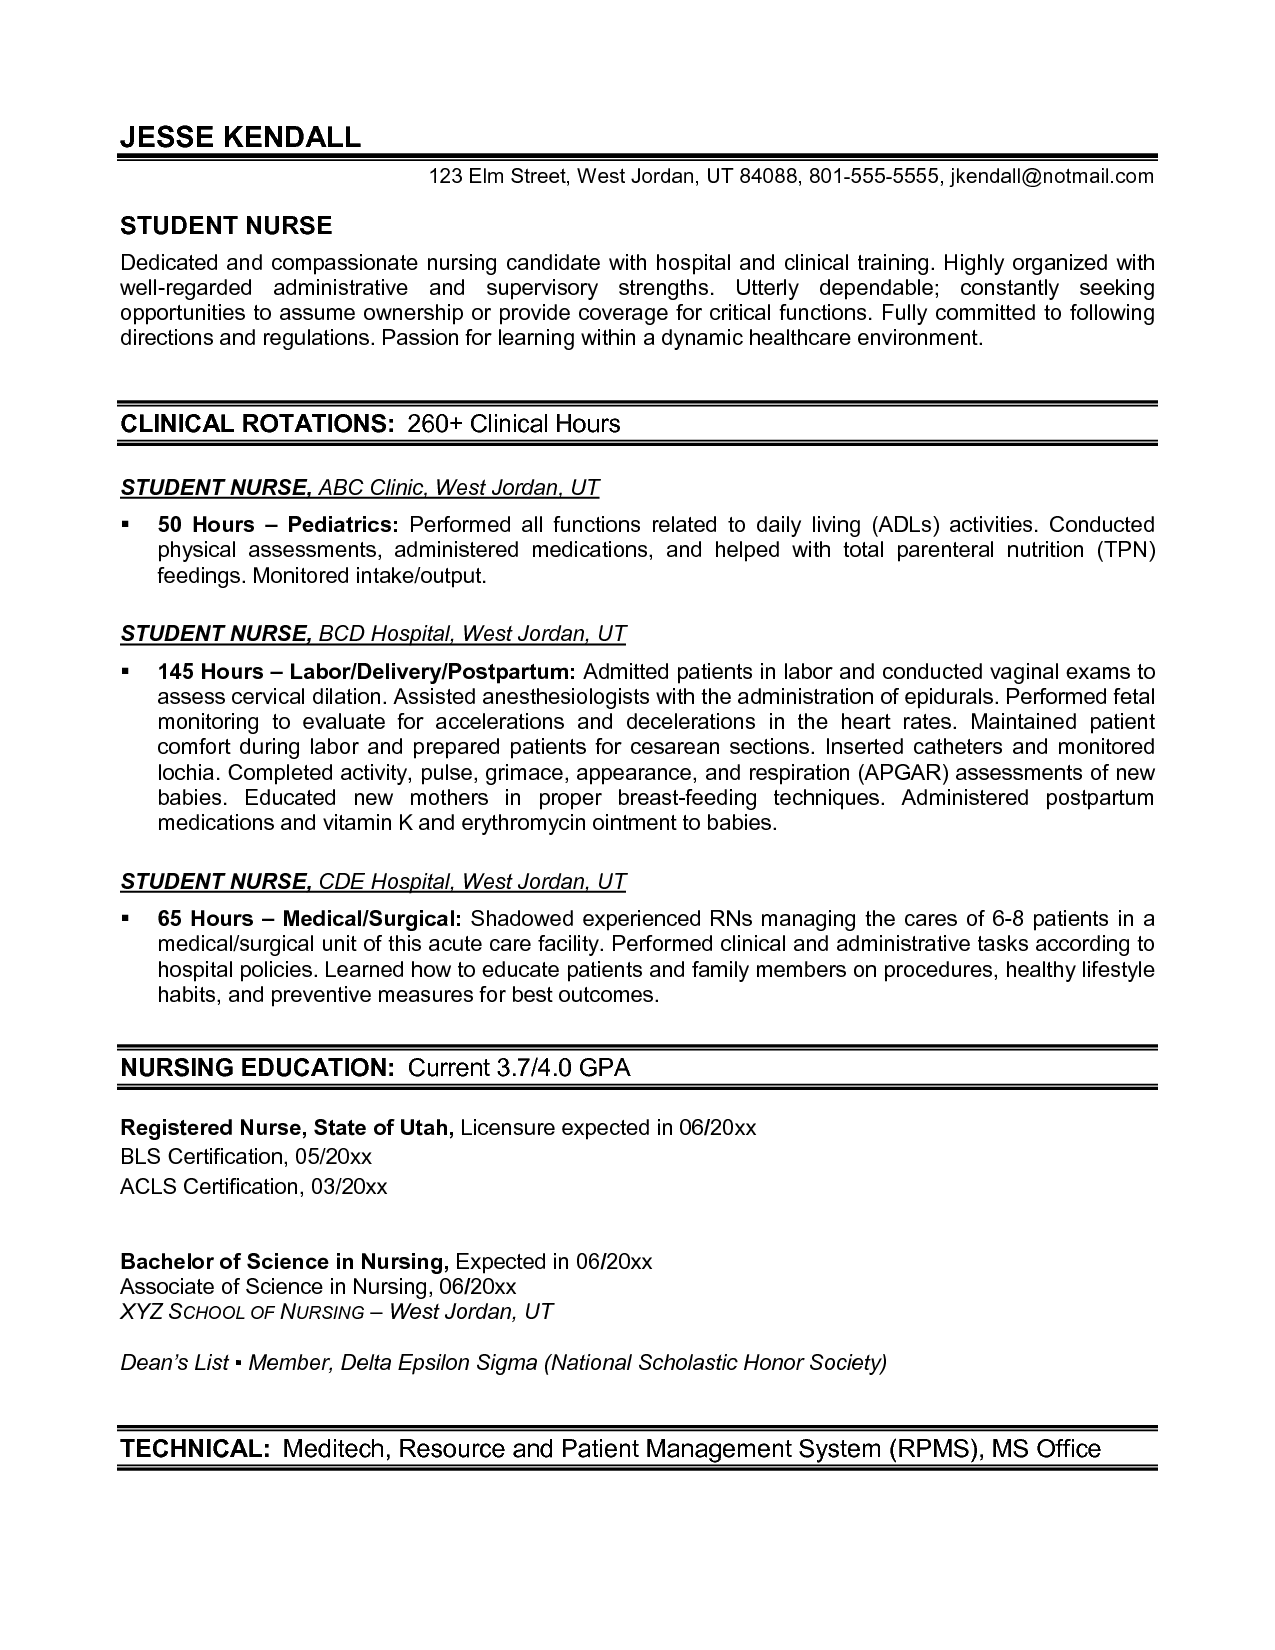 Resume Template Nursing Kuokim Template Nursing resume